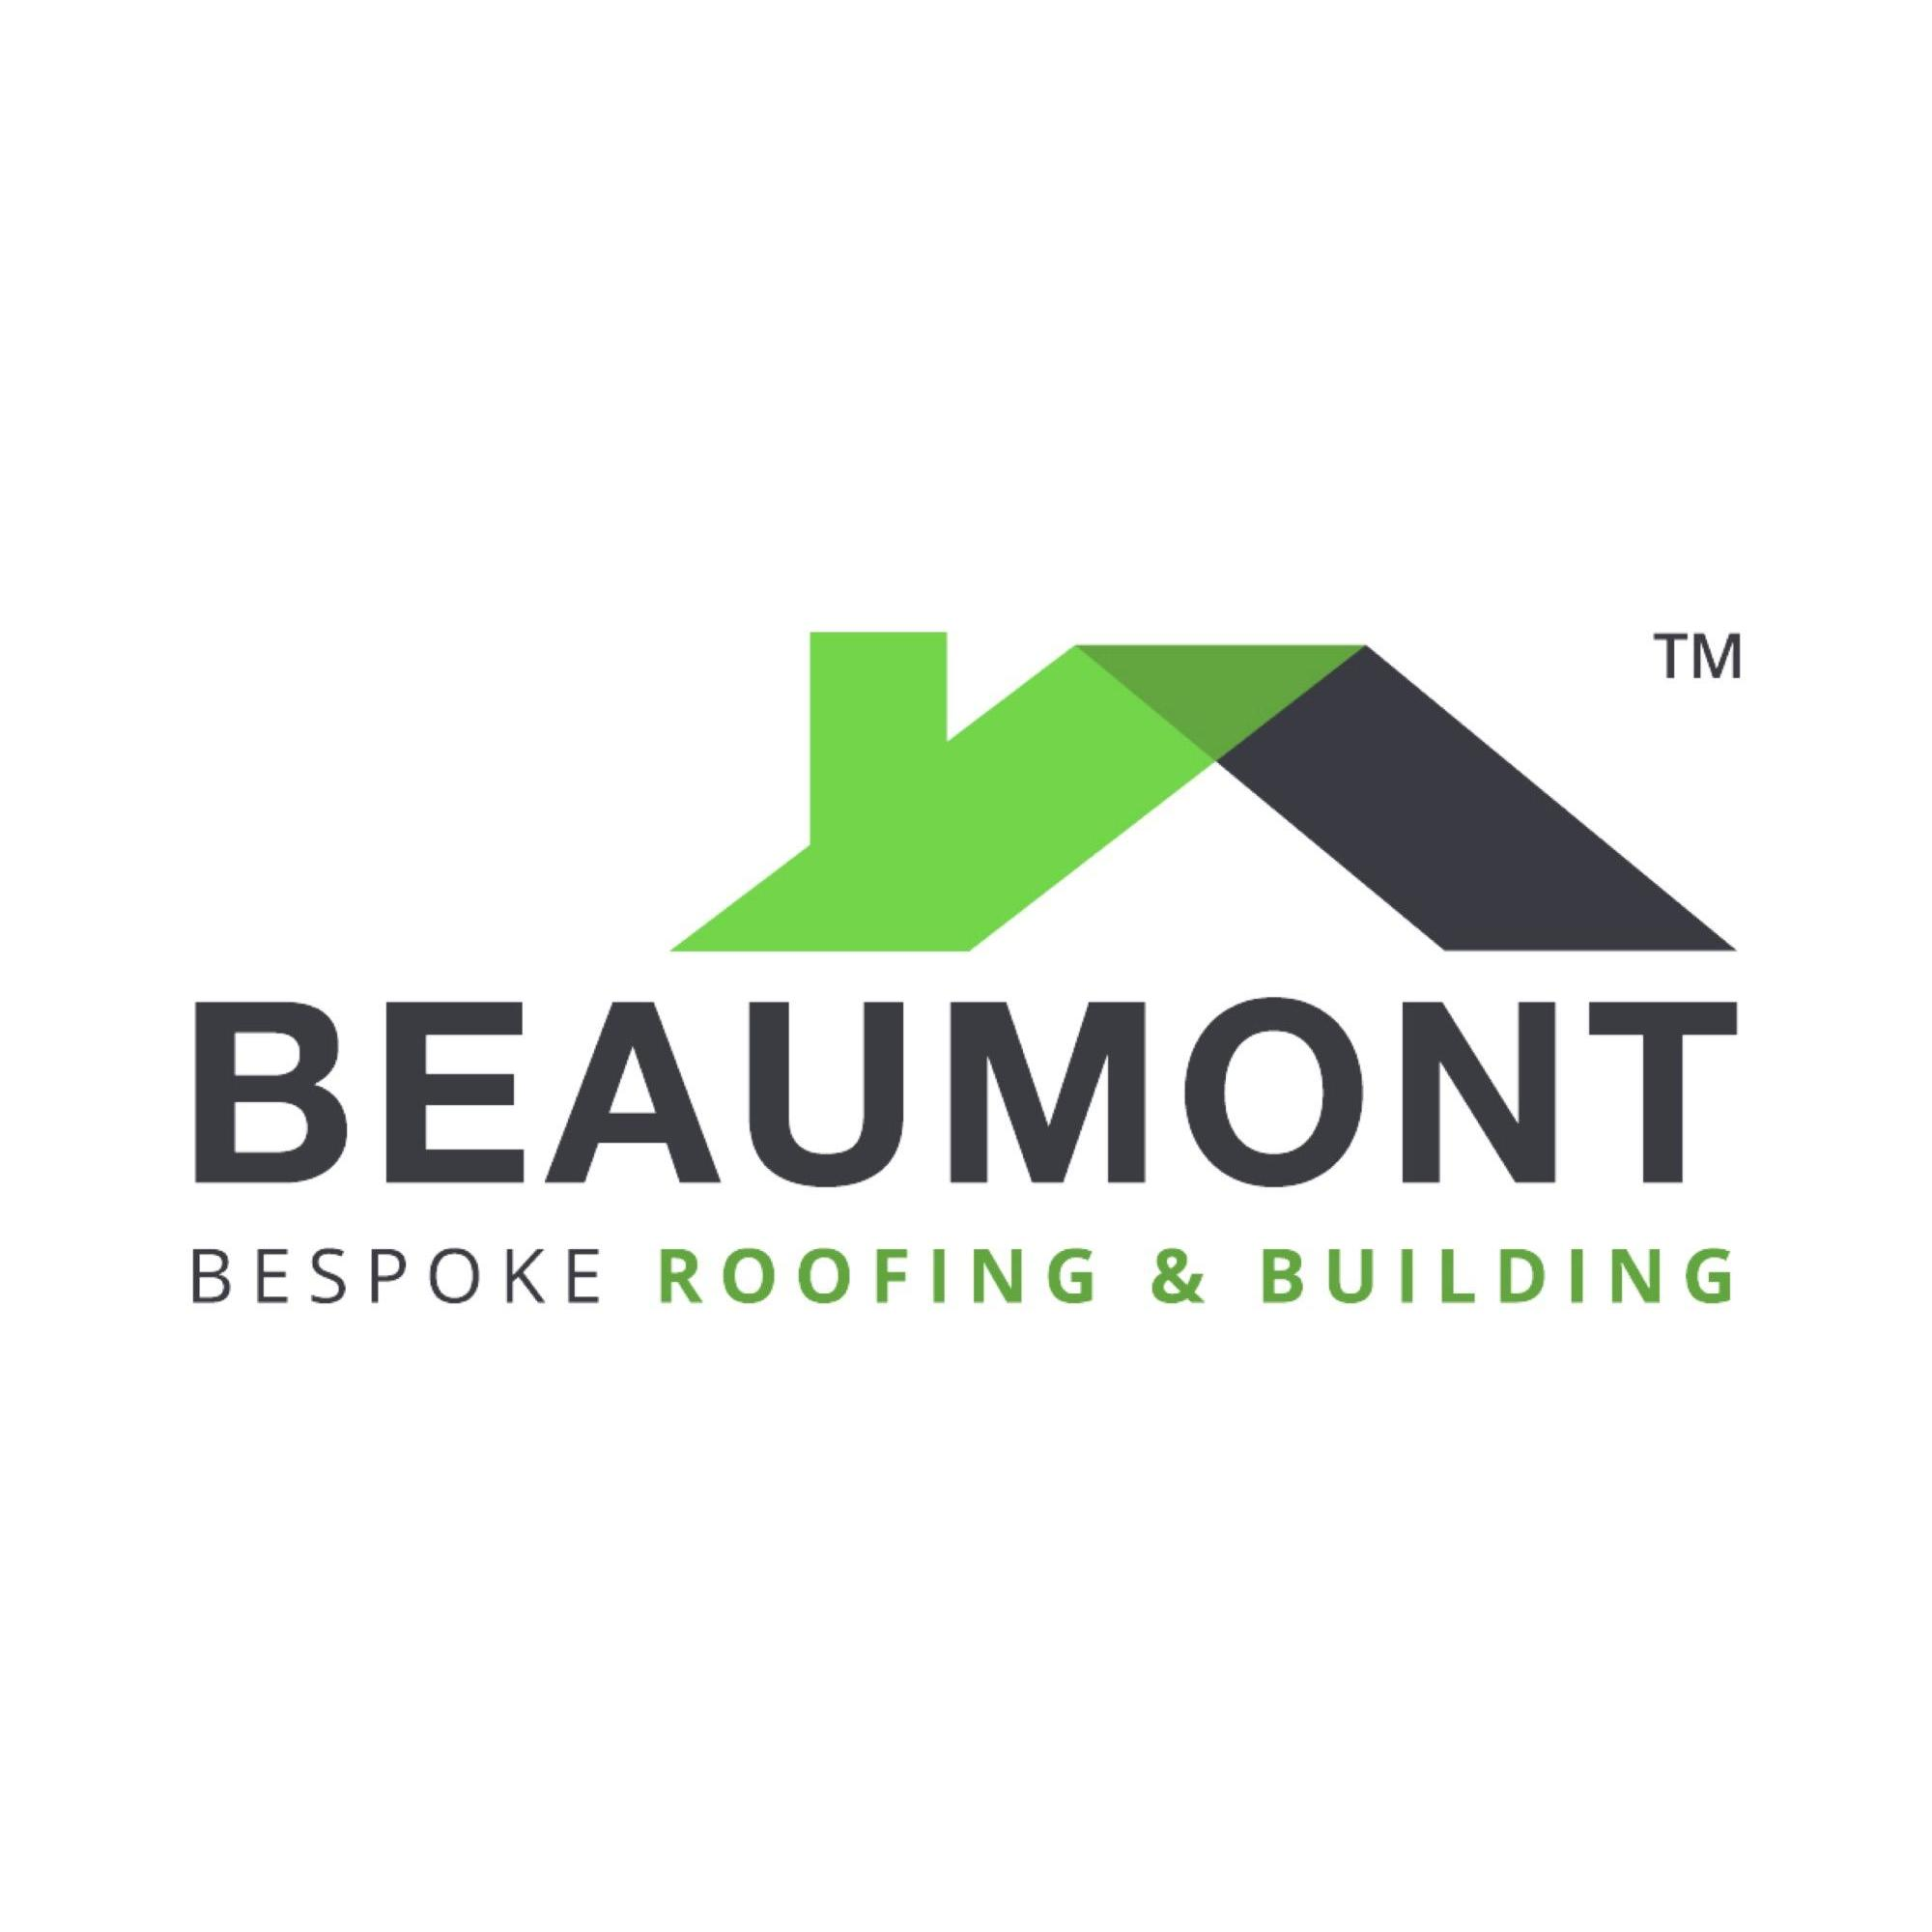 Beaumont Bespoke Roofing Amp Building Roofing Contracting